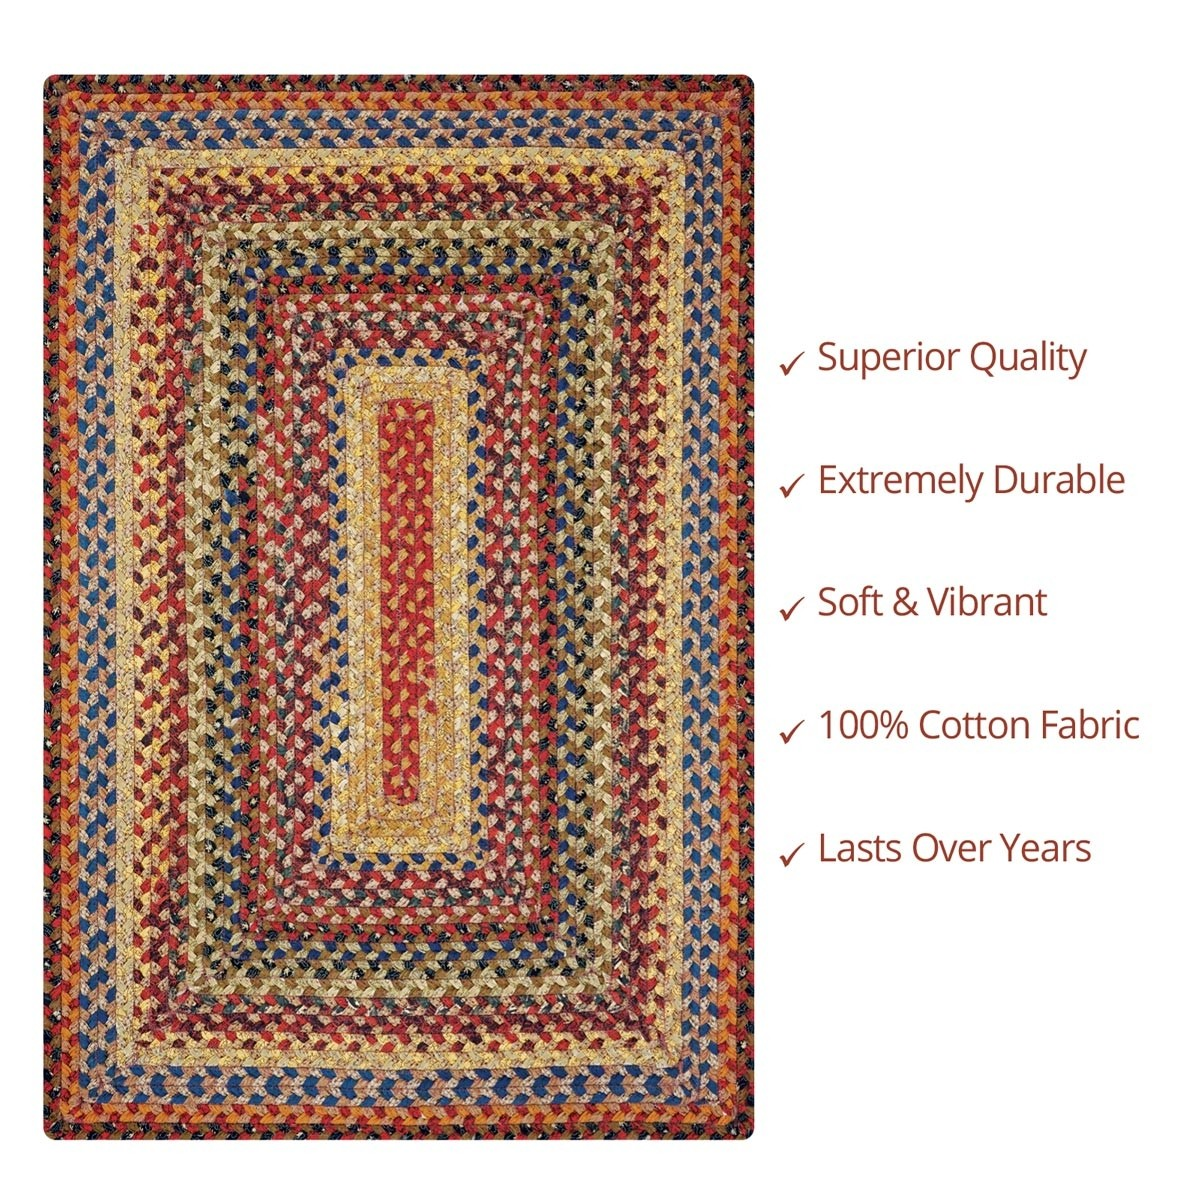 Buy Biscotti Multi Color Cotton Braided Rugs Online Homespice